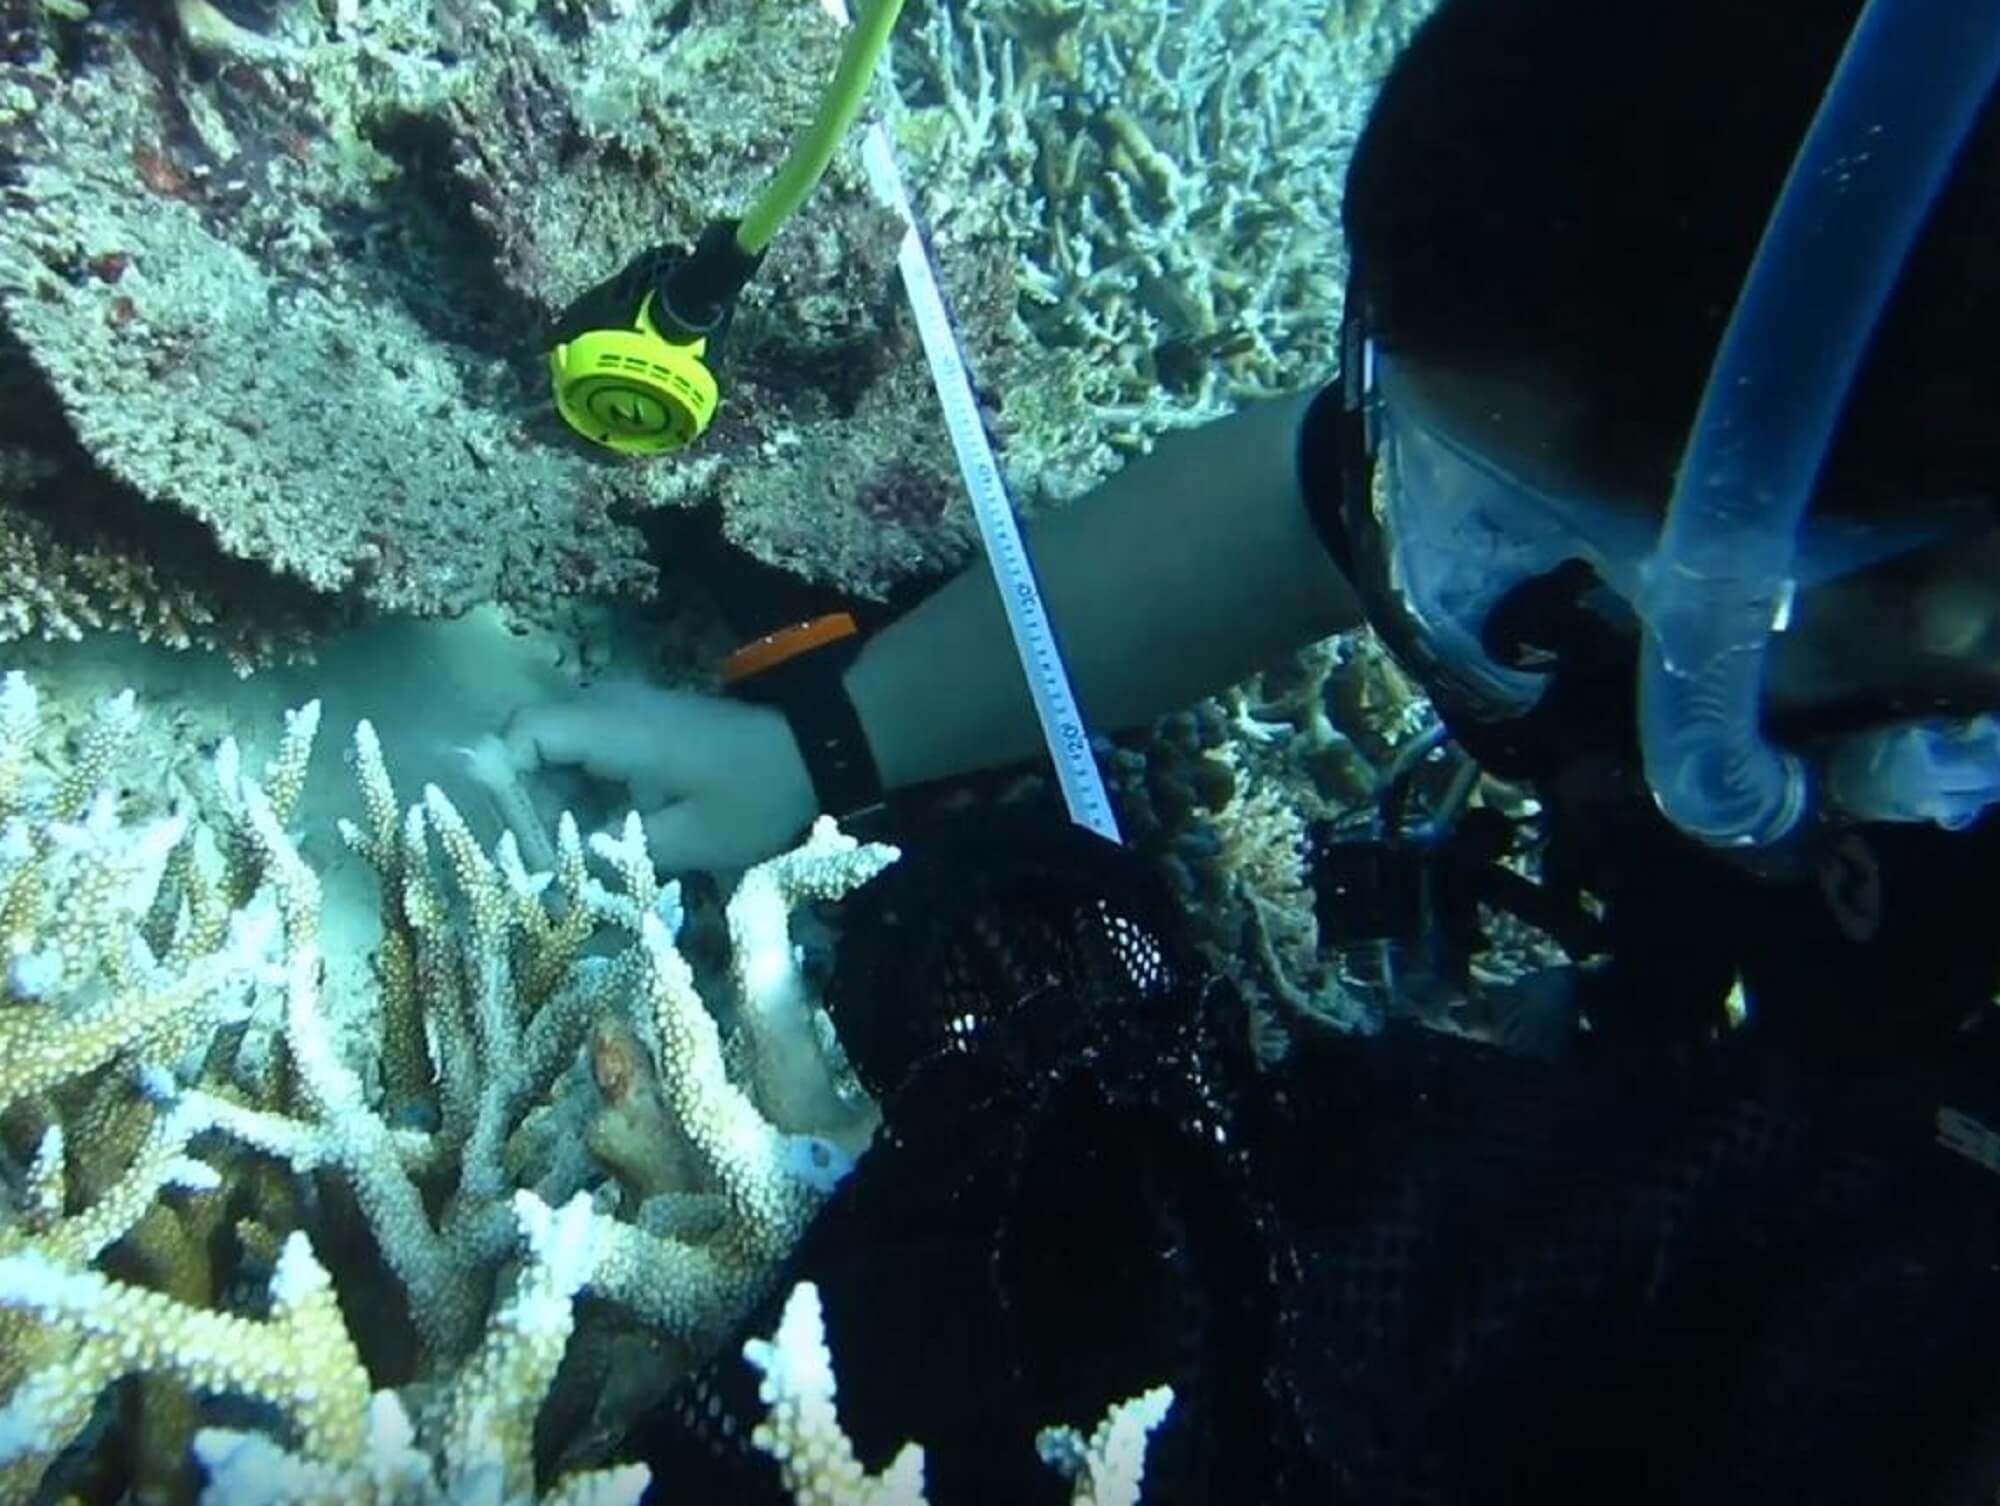 researcher with diving gear measuring coral underwater